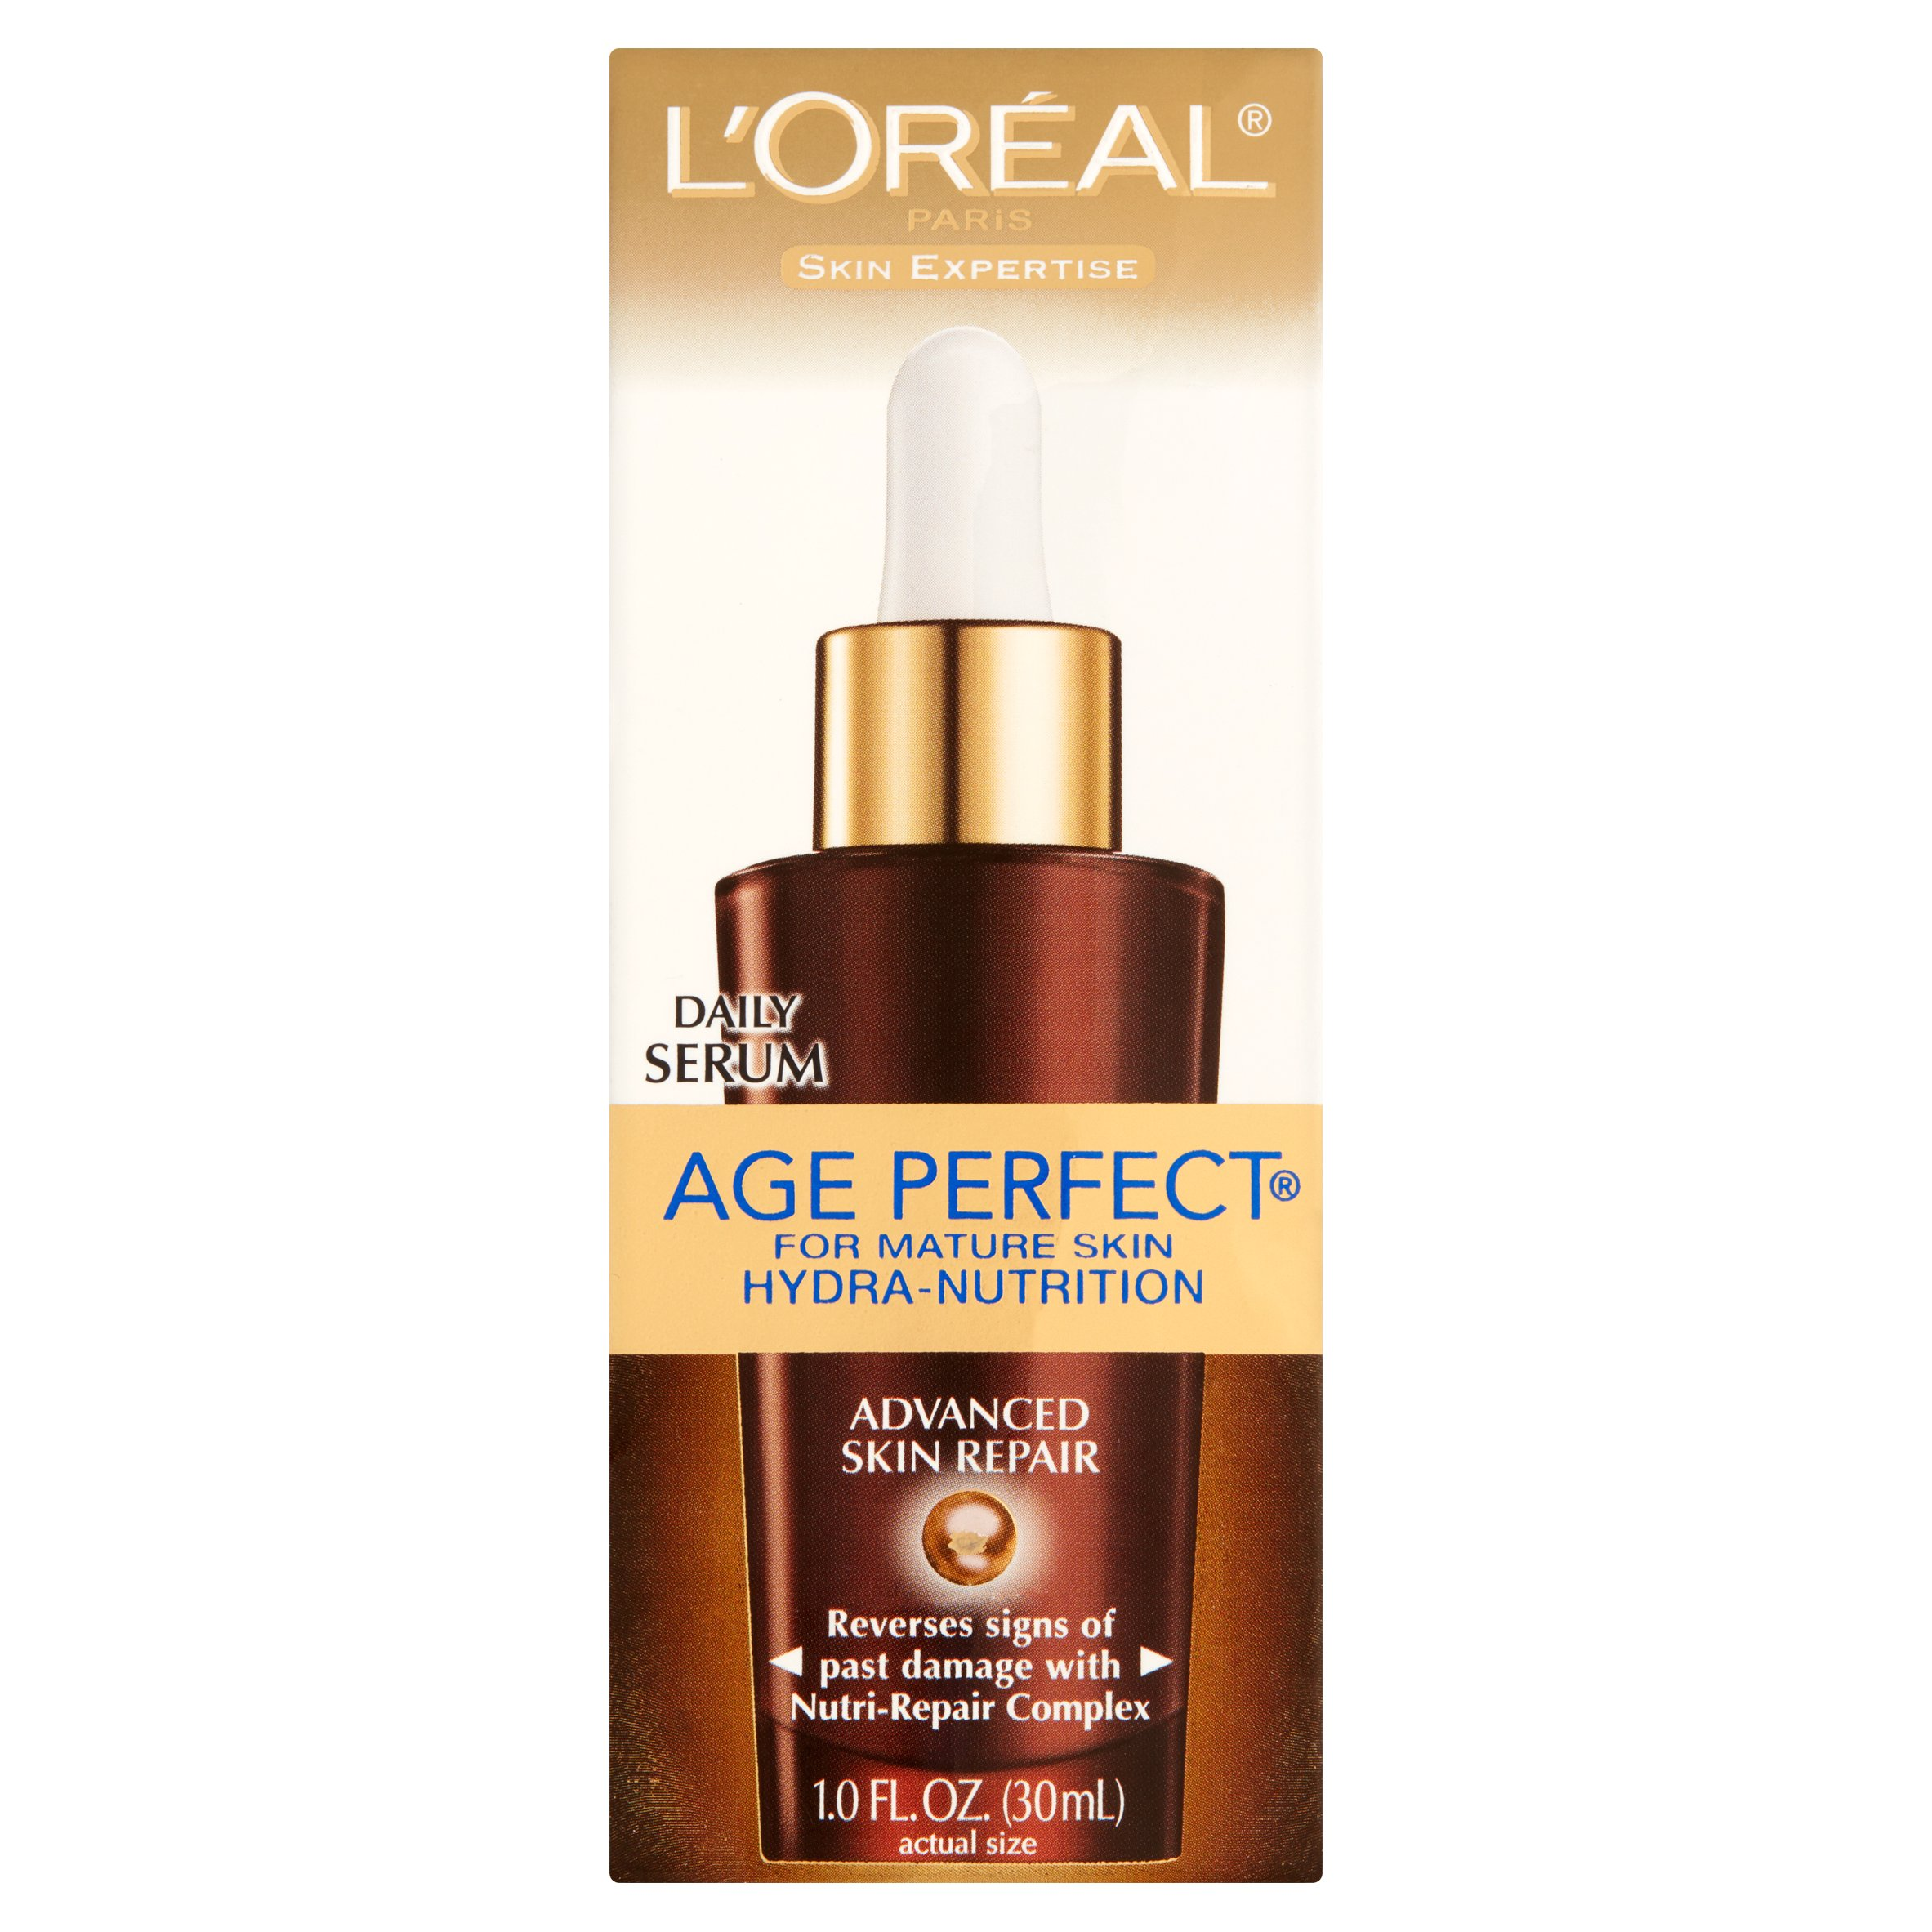 L'Oreal Paris Age Perfect Hydra Nutrition Advanced Skin Repair Daily Serum